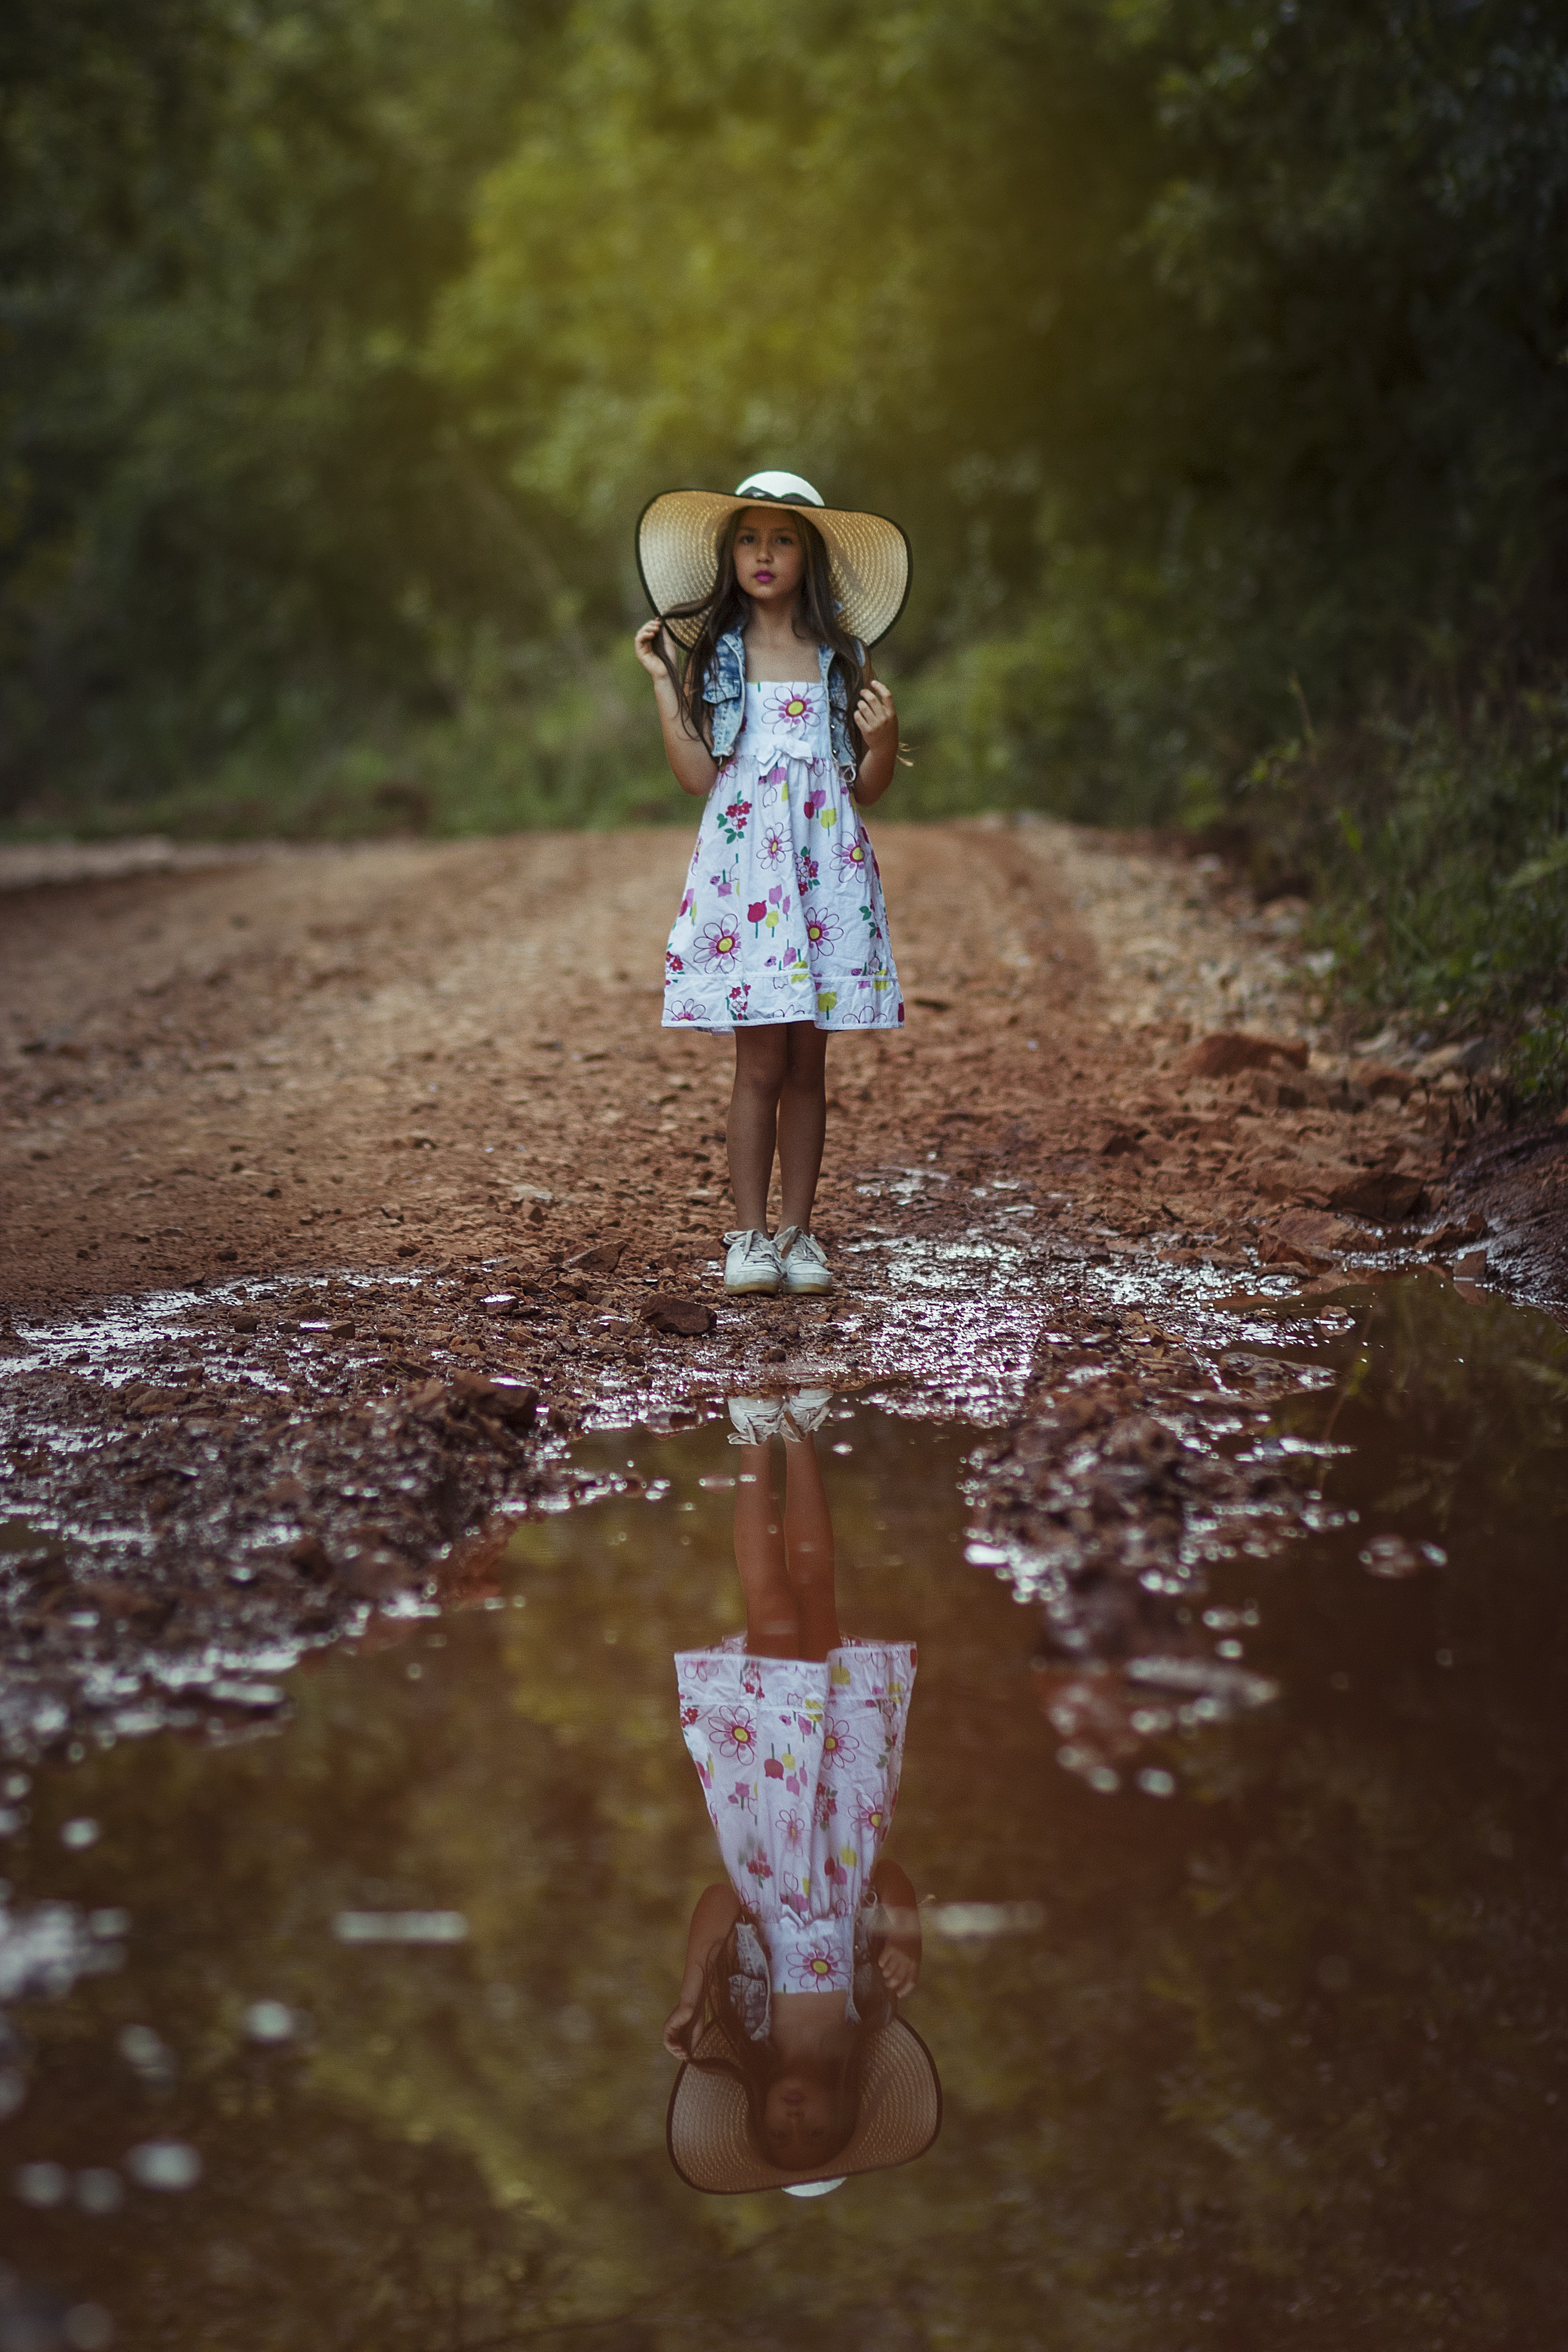 girl standing in front body of water